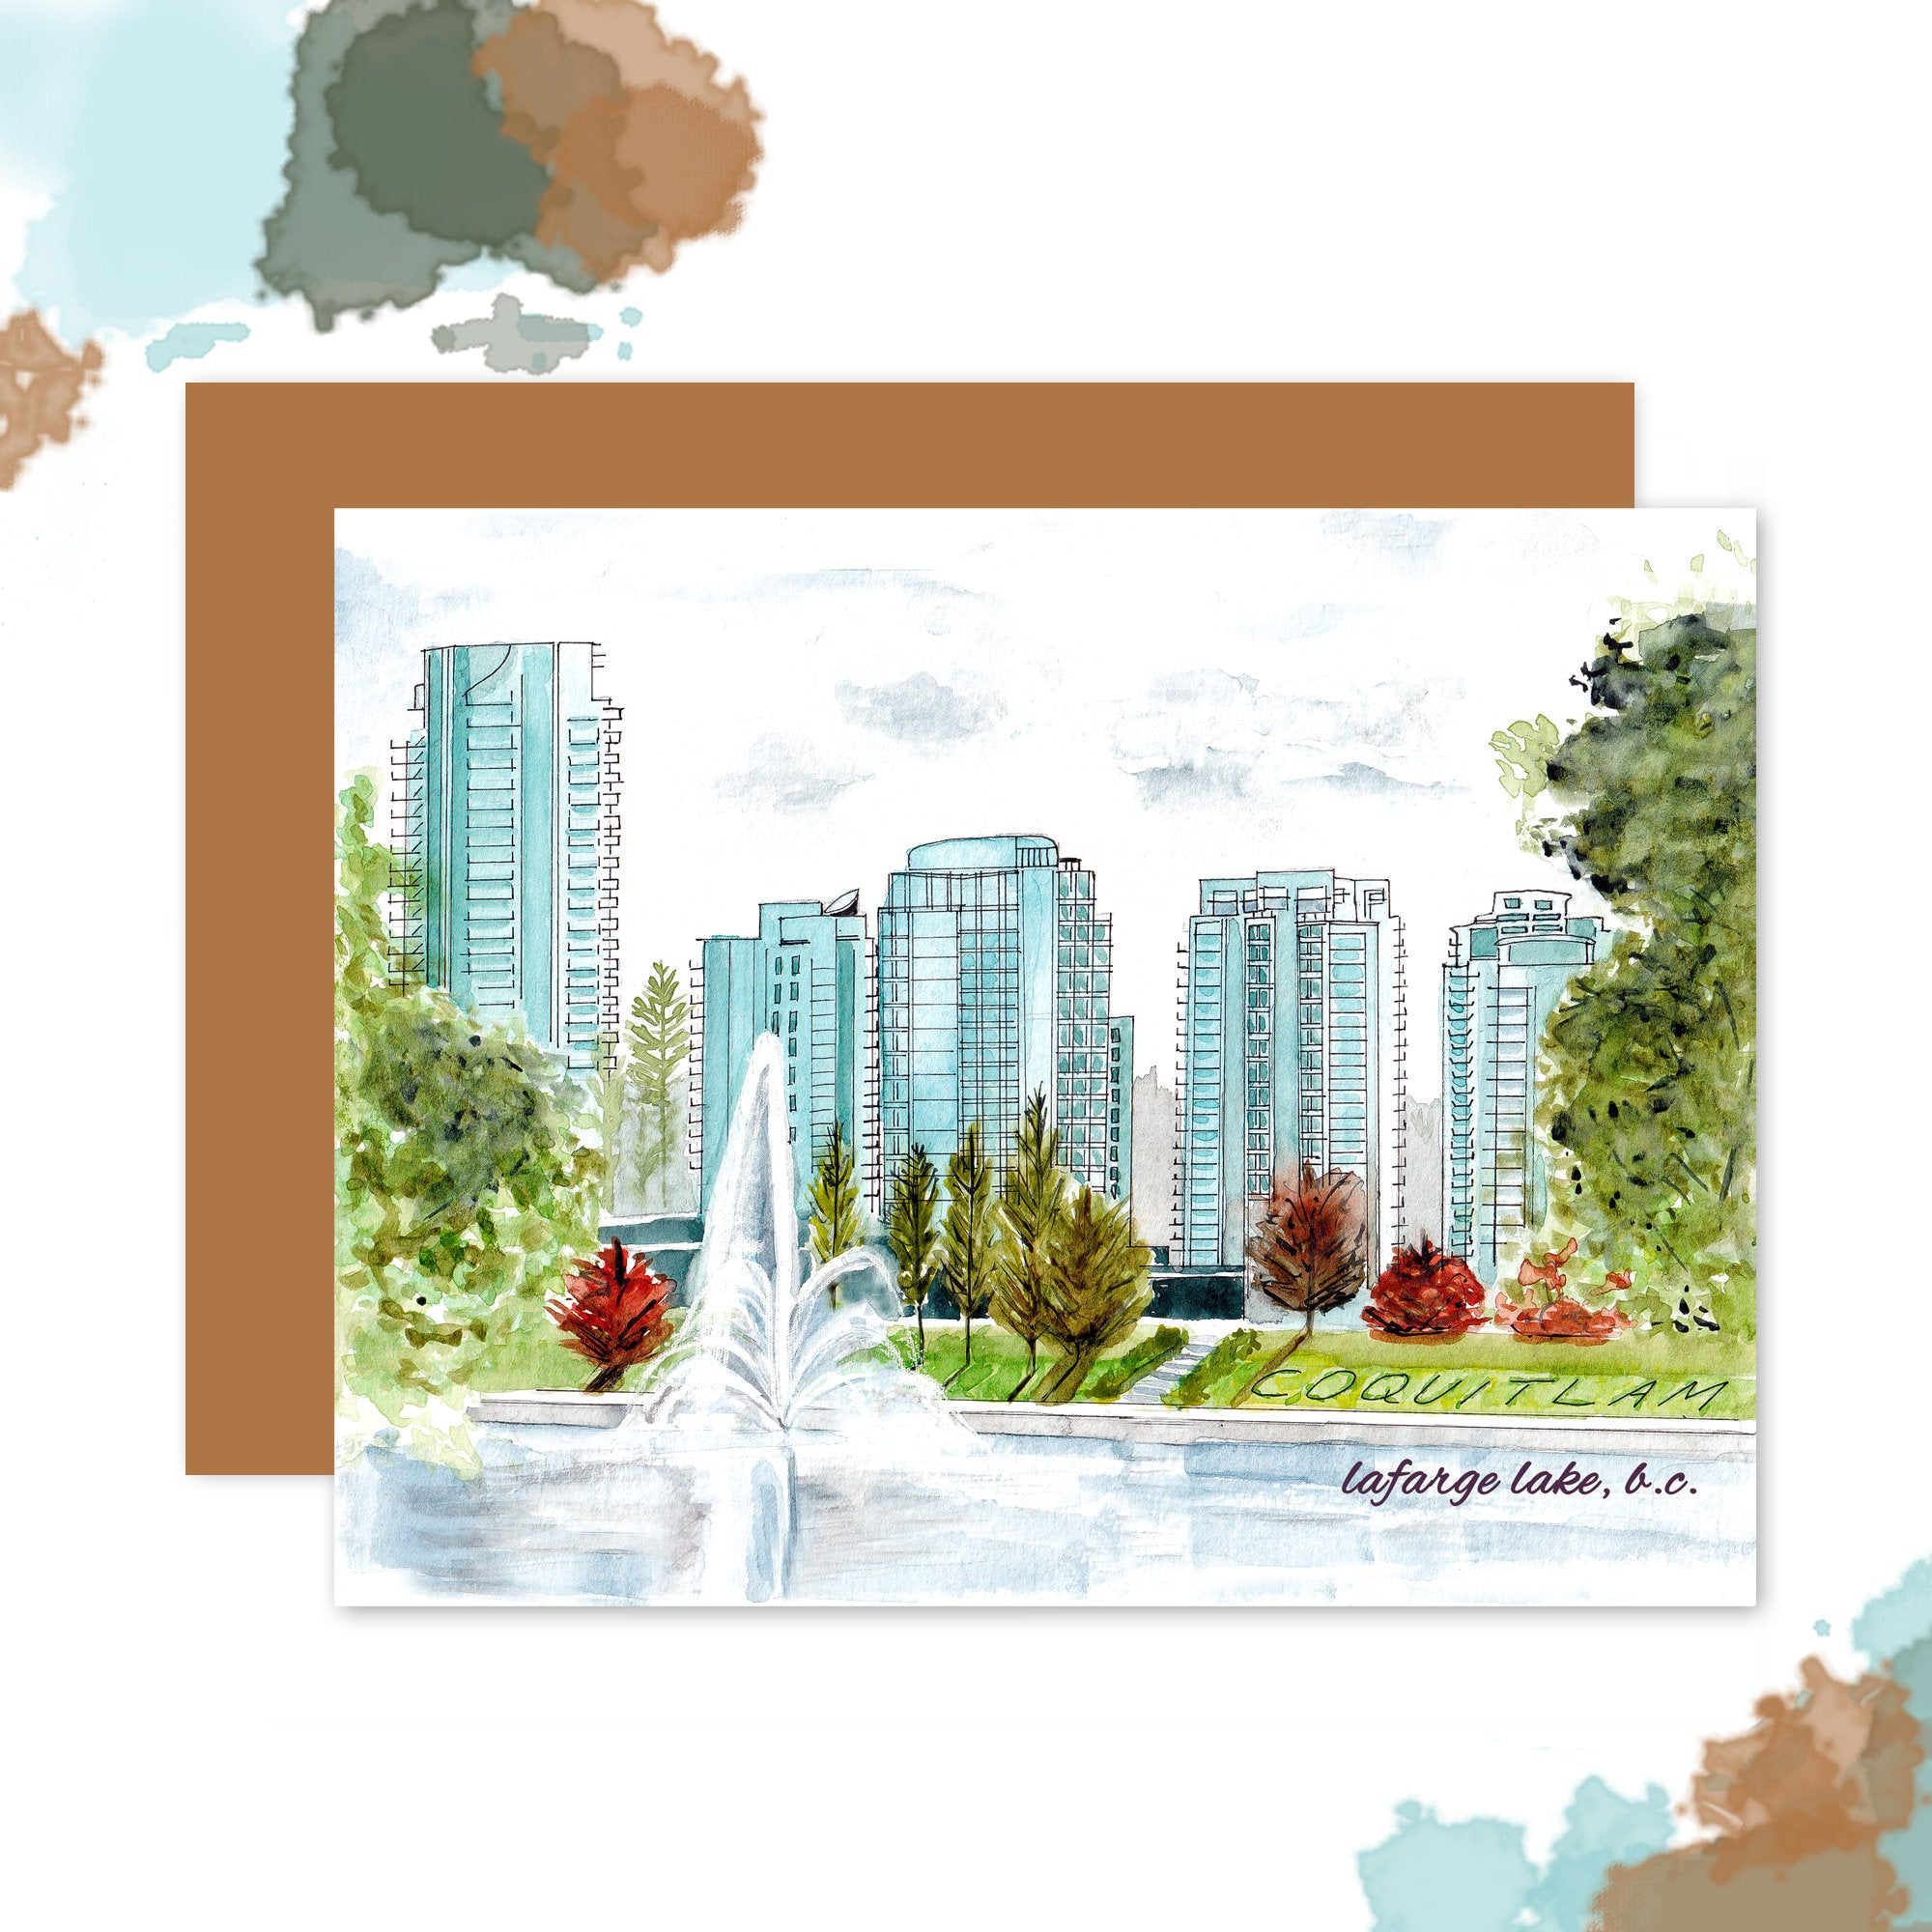 Coquitlam LaFarge Lake Thank You Card